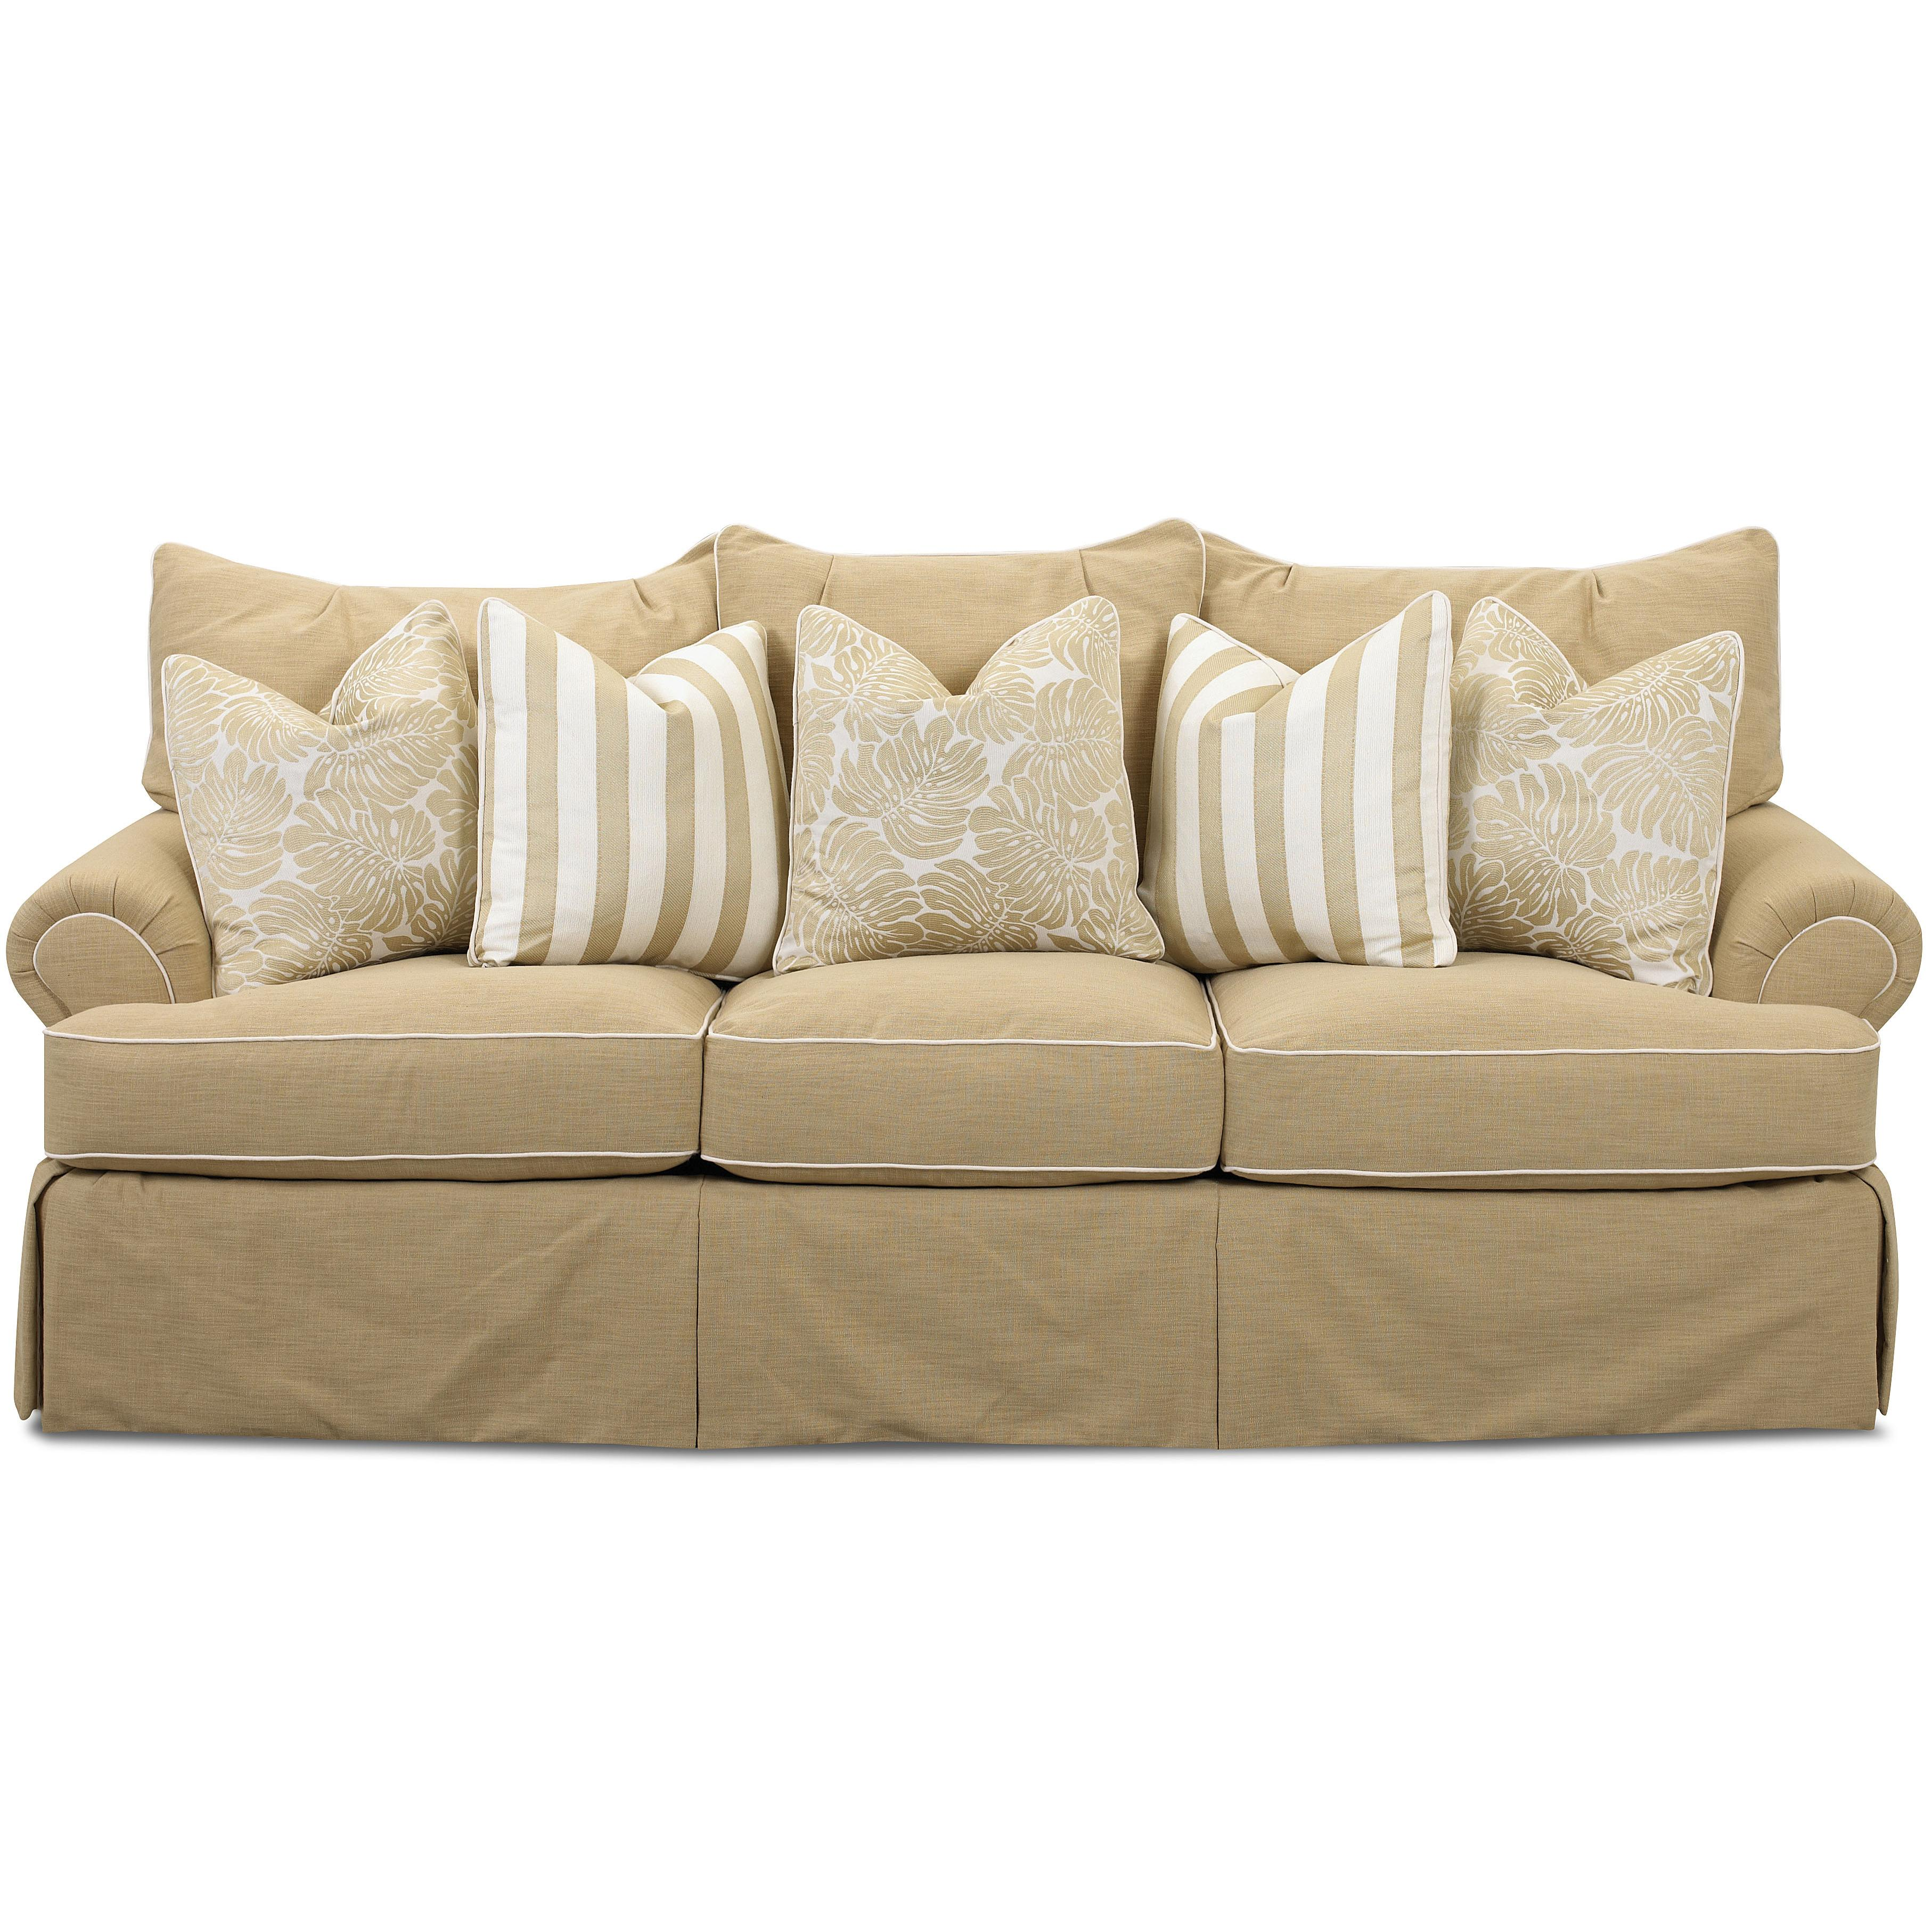 Klaussner Audrey Traditional Sofa - Item Number: D95300 S